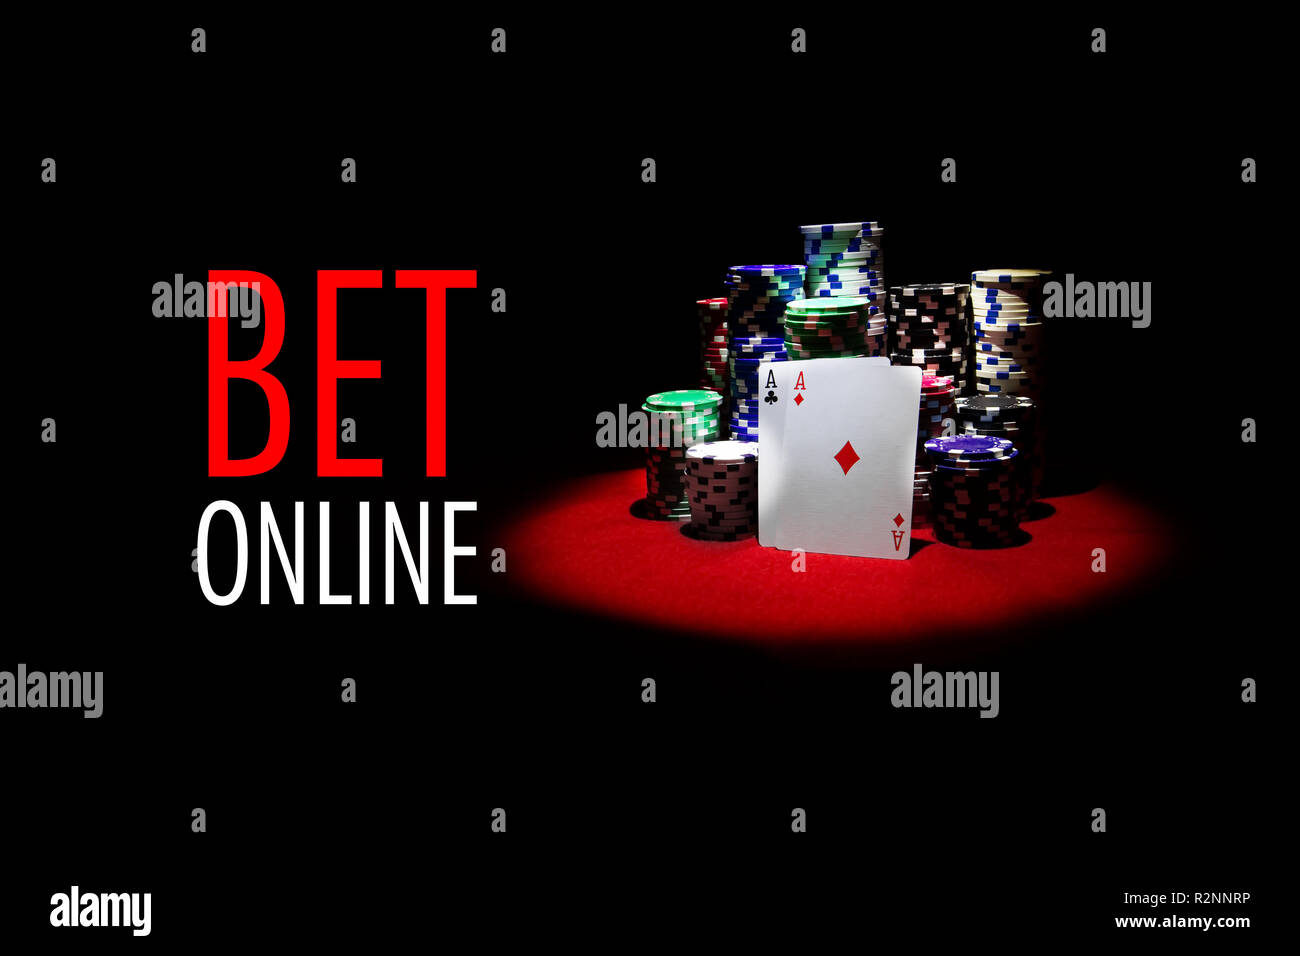 Poker cards gambling chips on red table with message BET